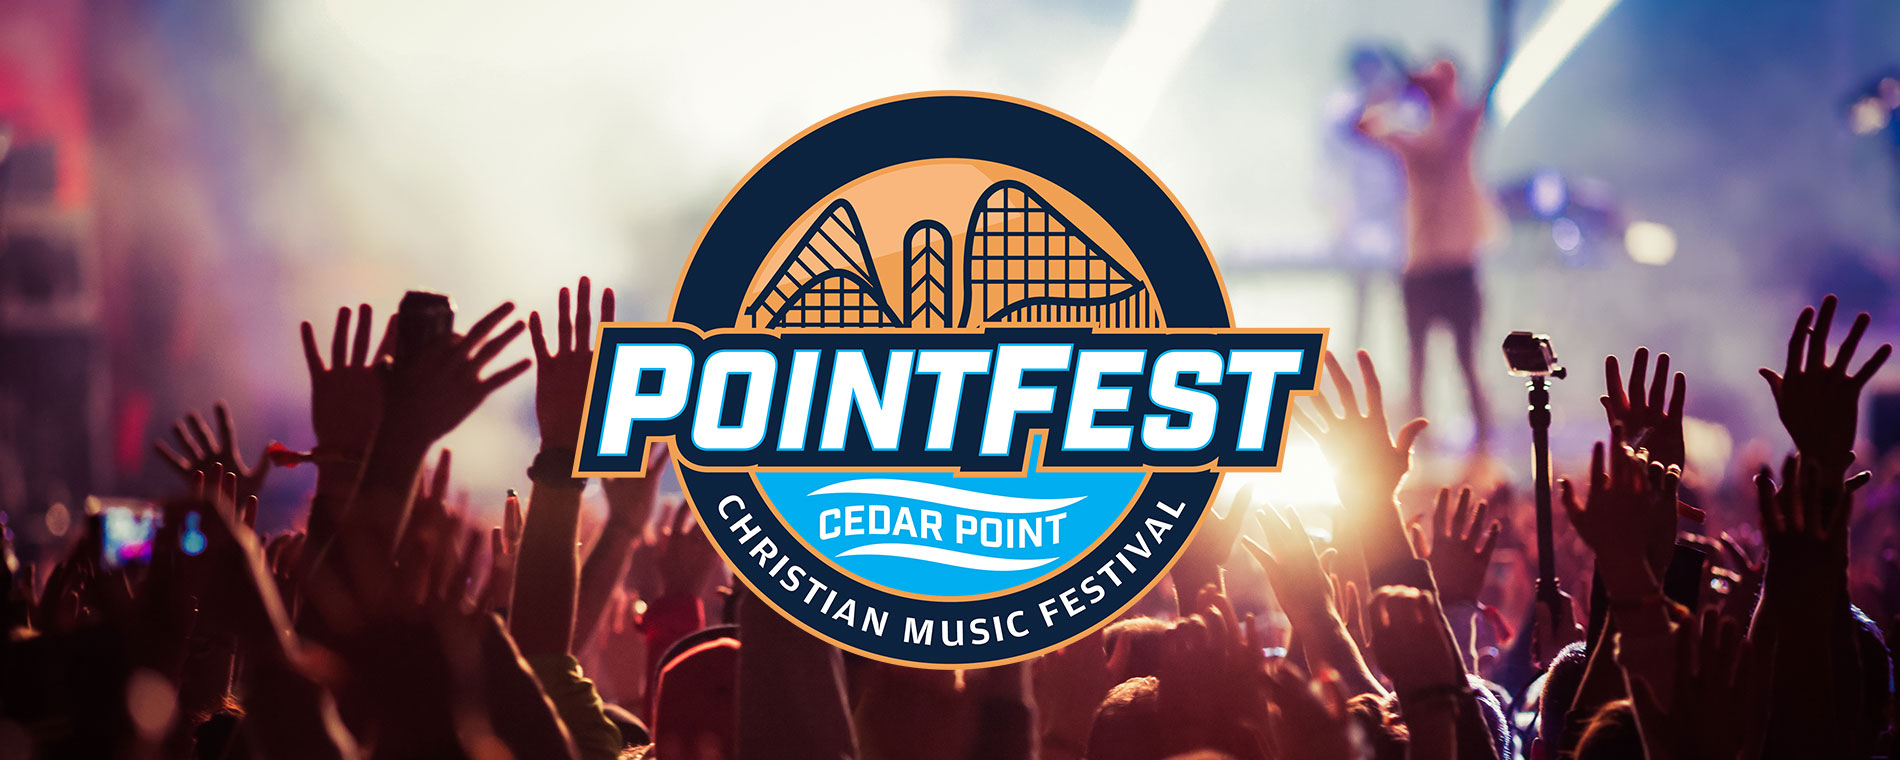 PointFest Christian Music Festival at Cedar Point